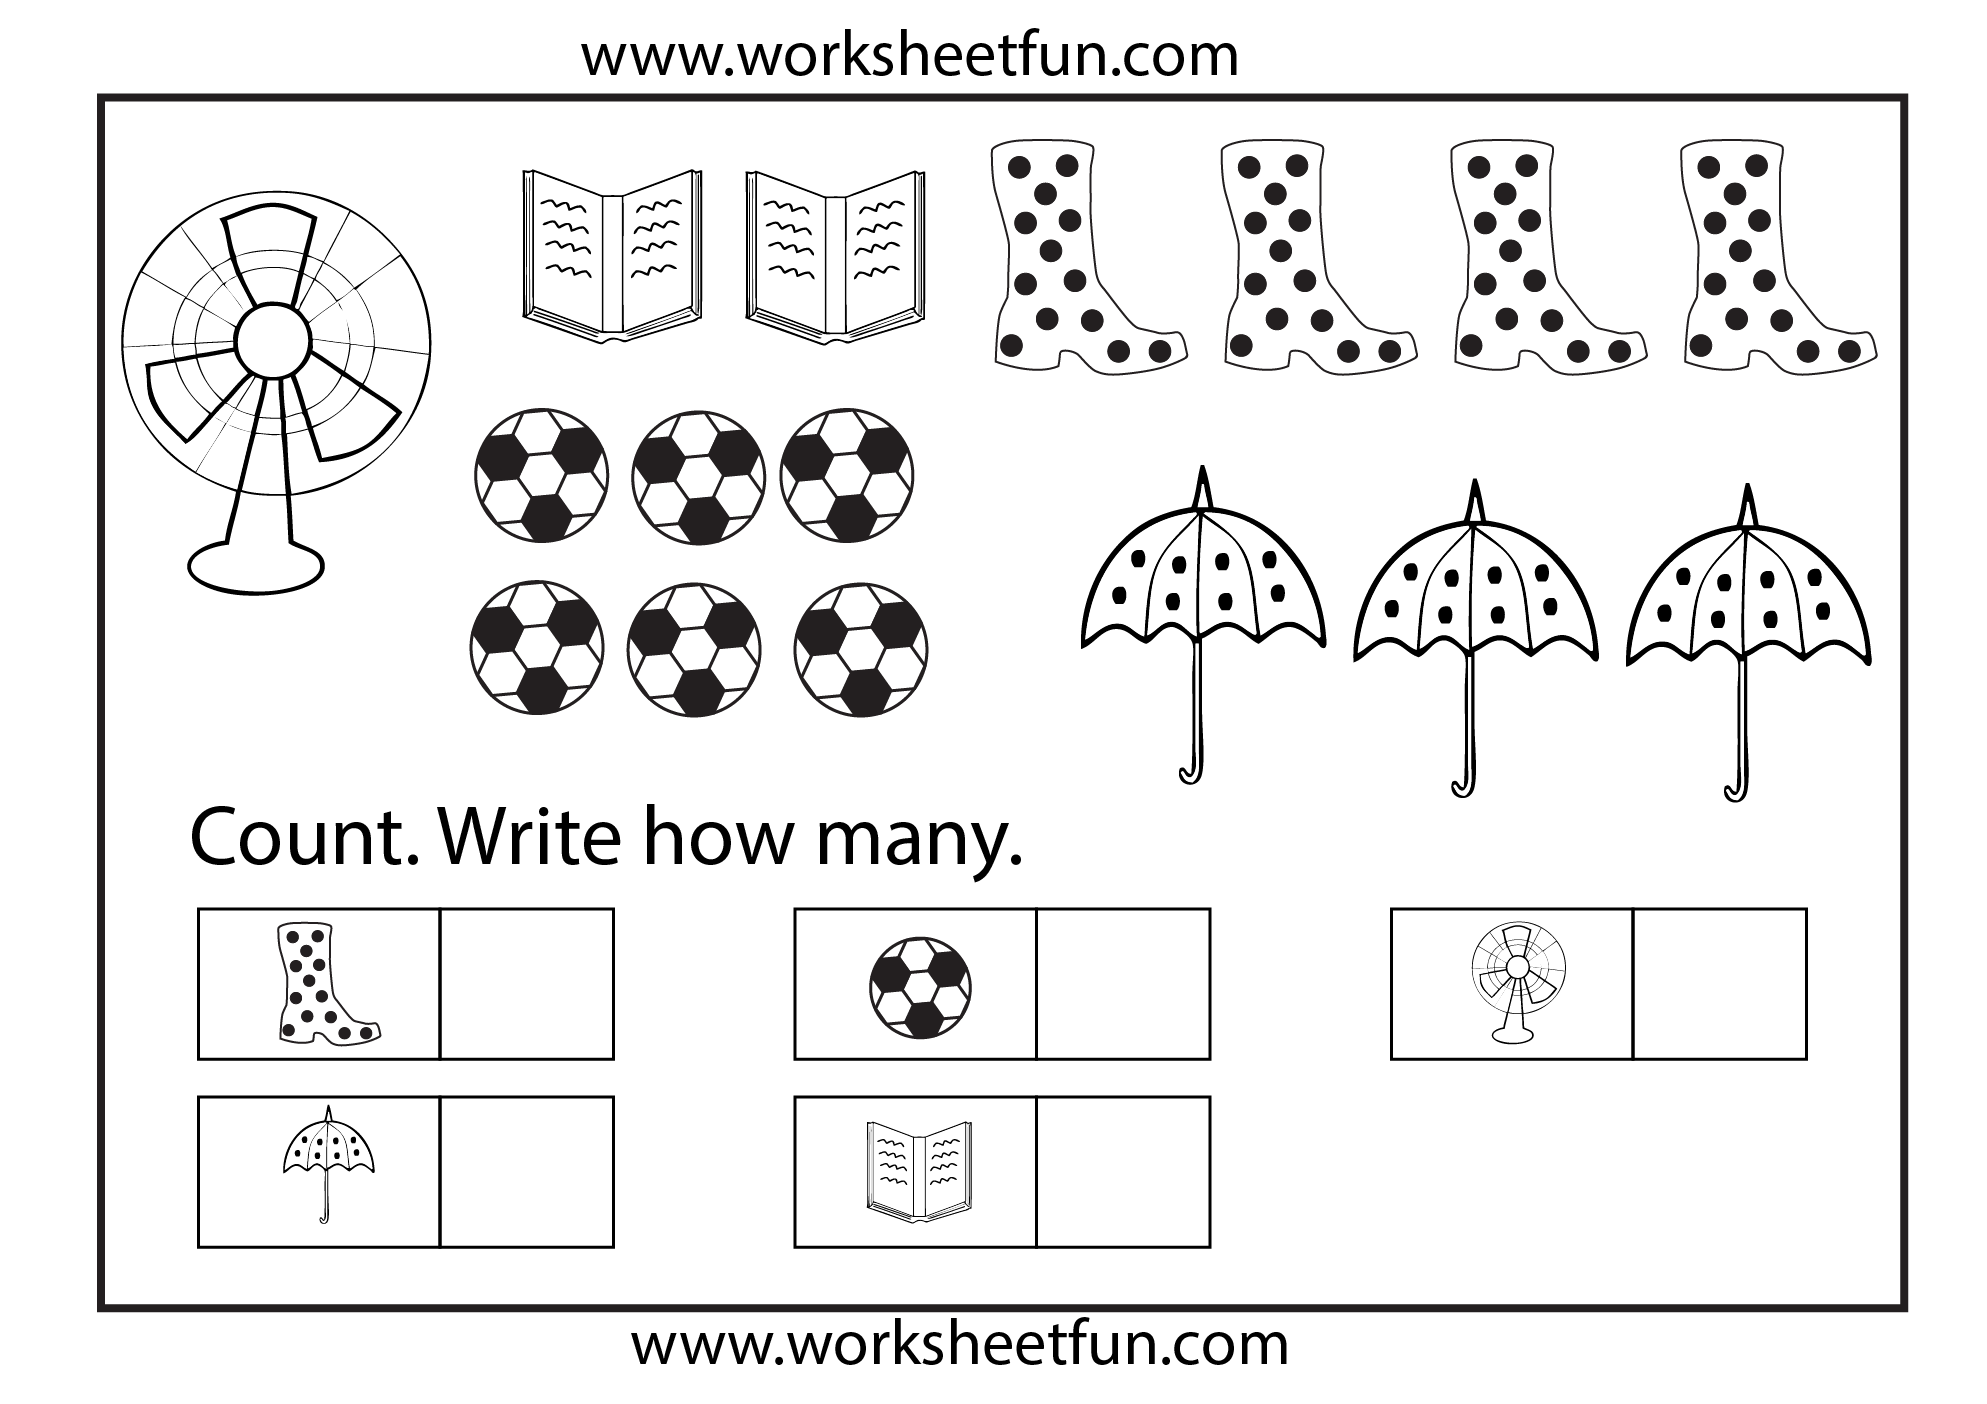 Various Count The Spots Worksheets Here Including Insects Ladybugs Butterflies Cows Frogs